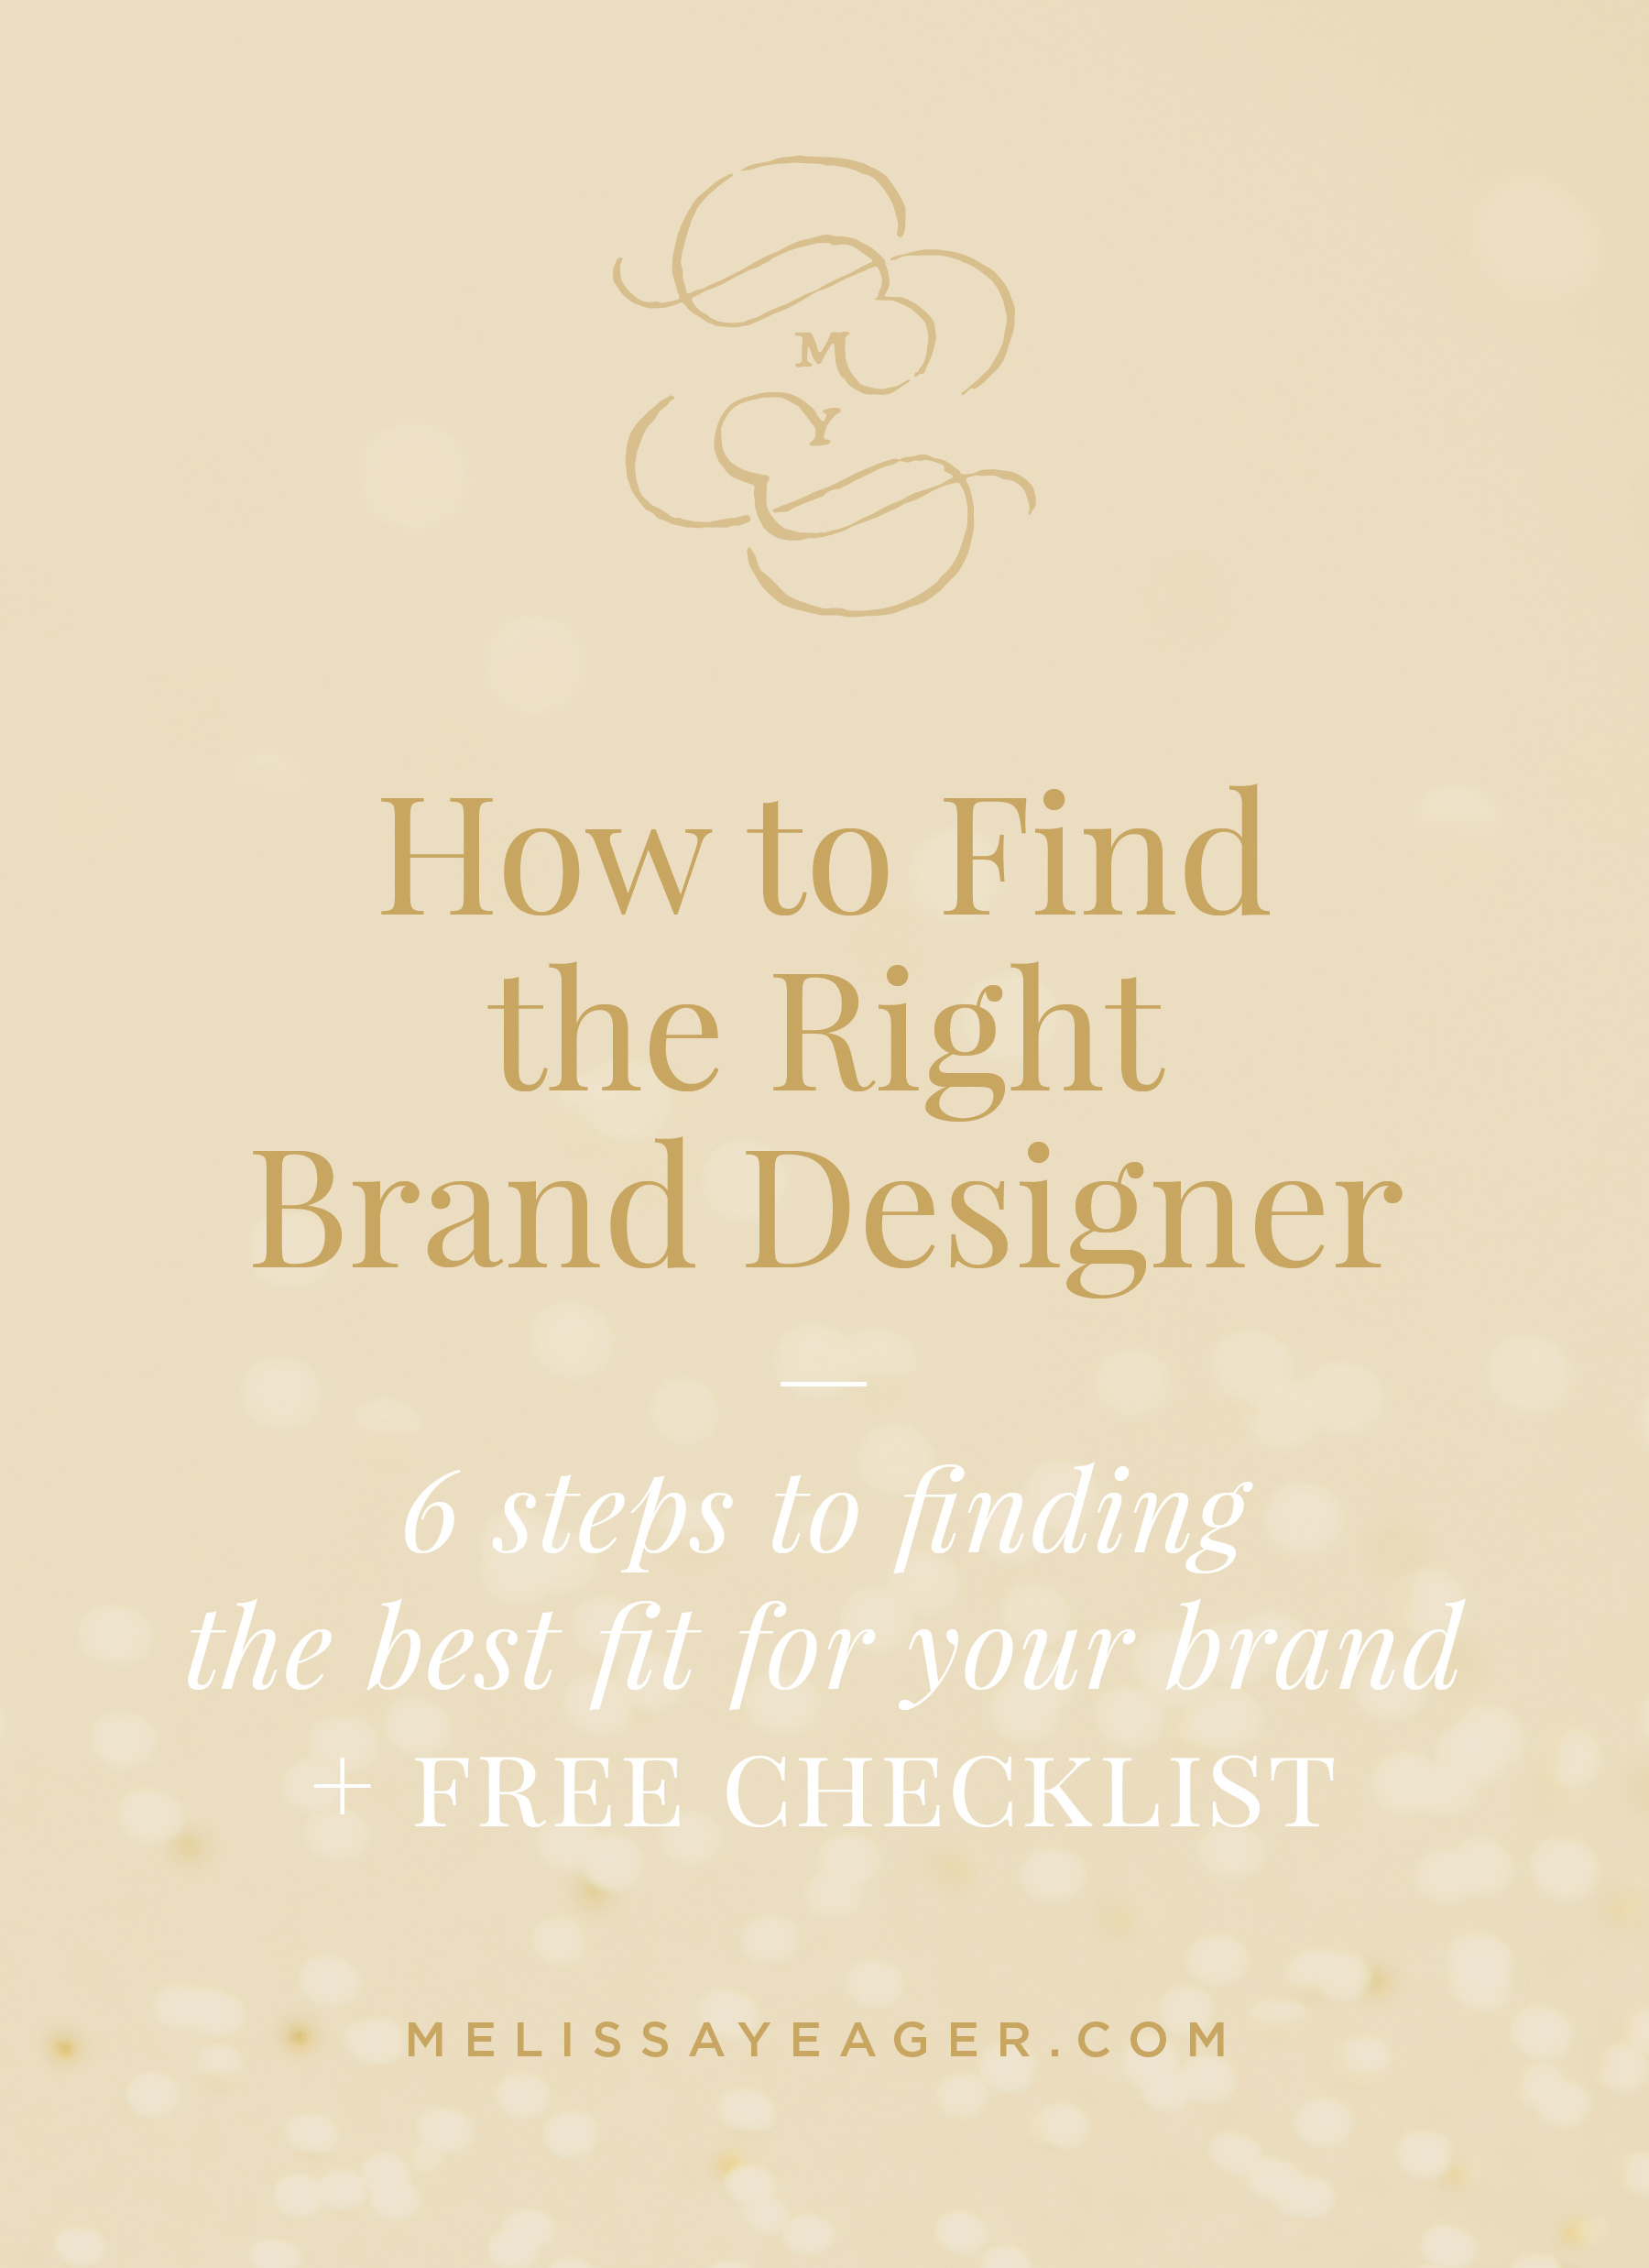 How to Find the Right Brand Designer - 6 steps to finding the best fit for your brand